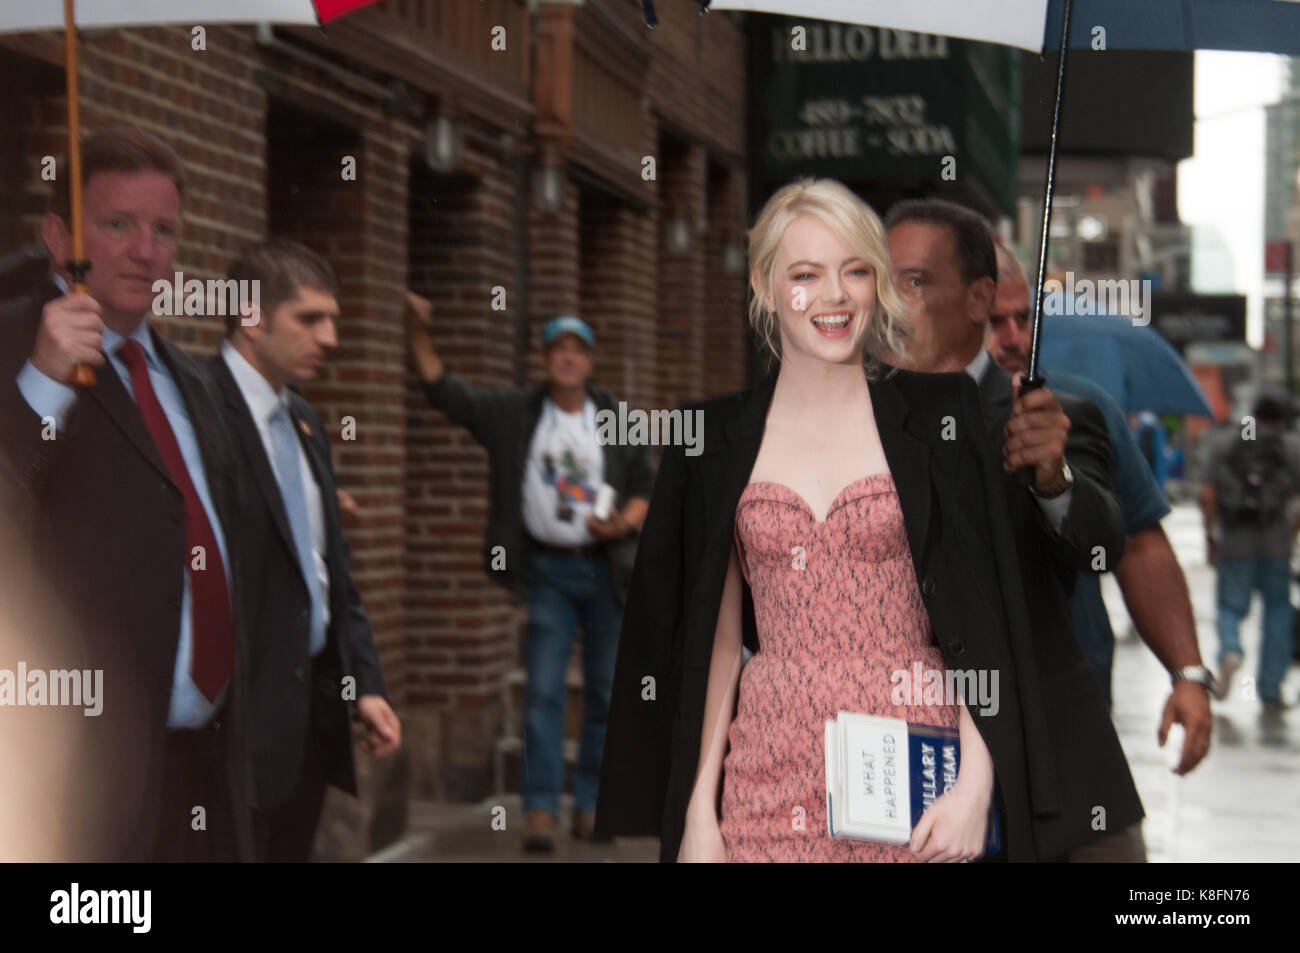 Emma Stone arriving at Colbert Show - Stock Image